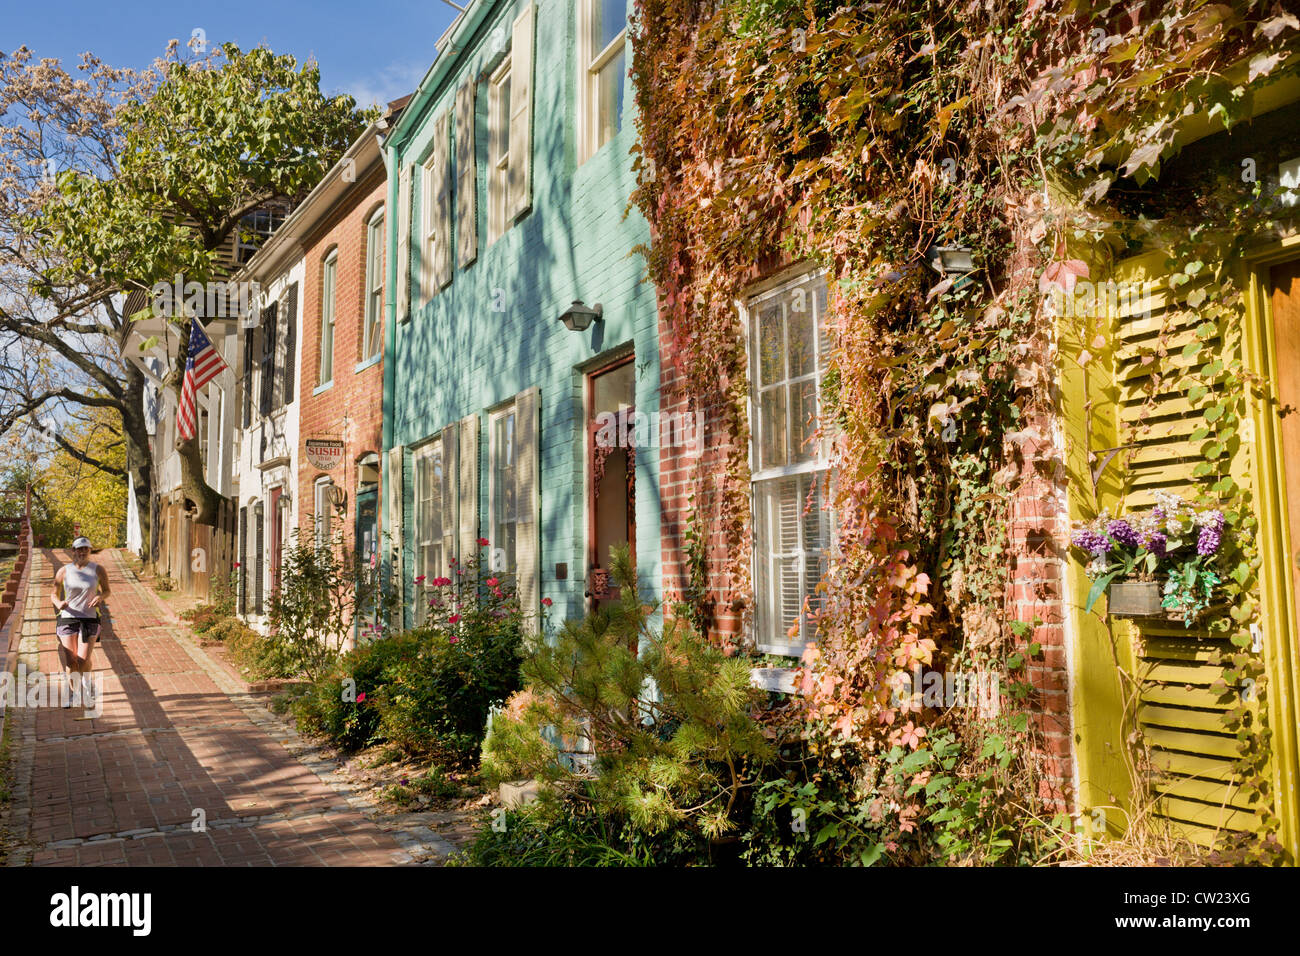 Cute homes along C&O Canal in Georgetown, Washington D.C. - Stock Image